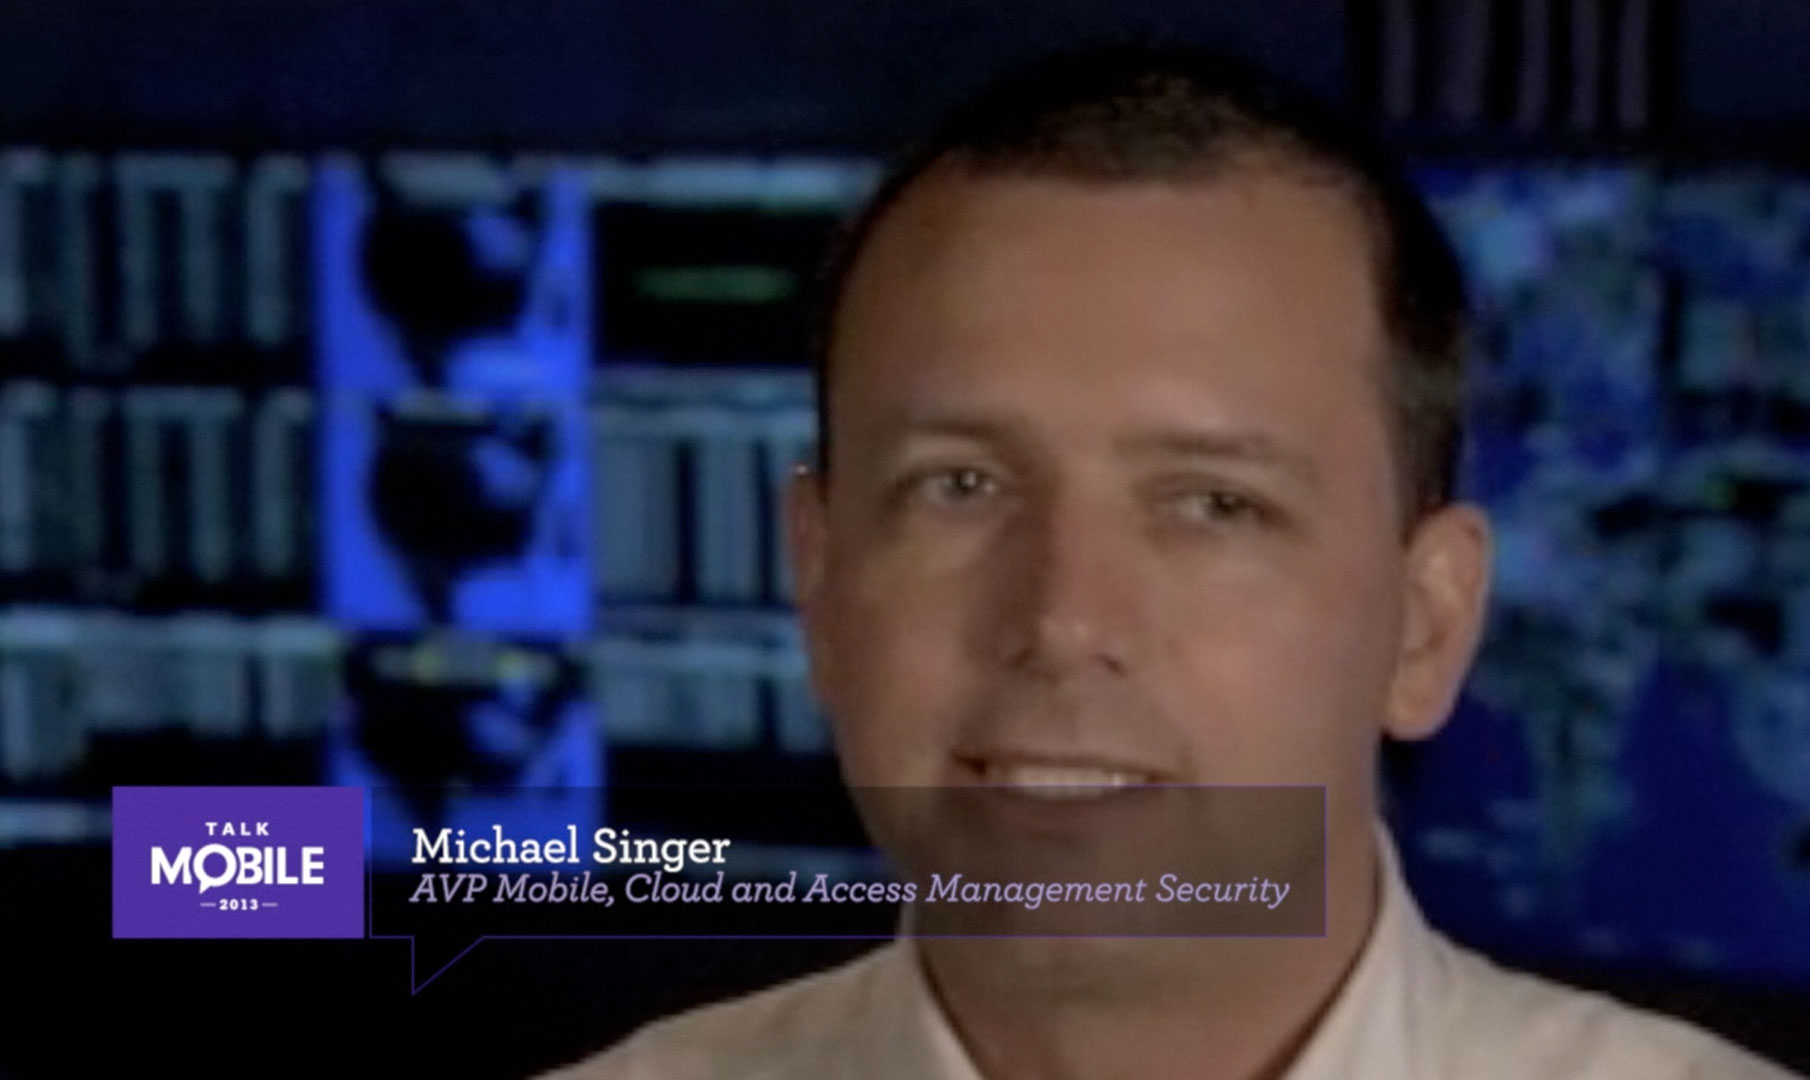 Michael Singer on mobile security.